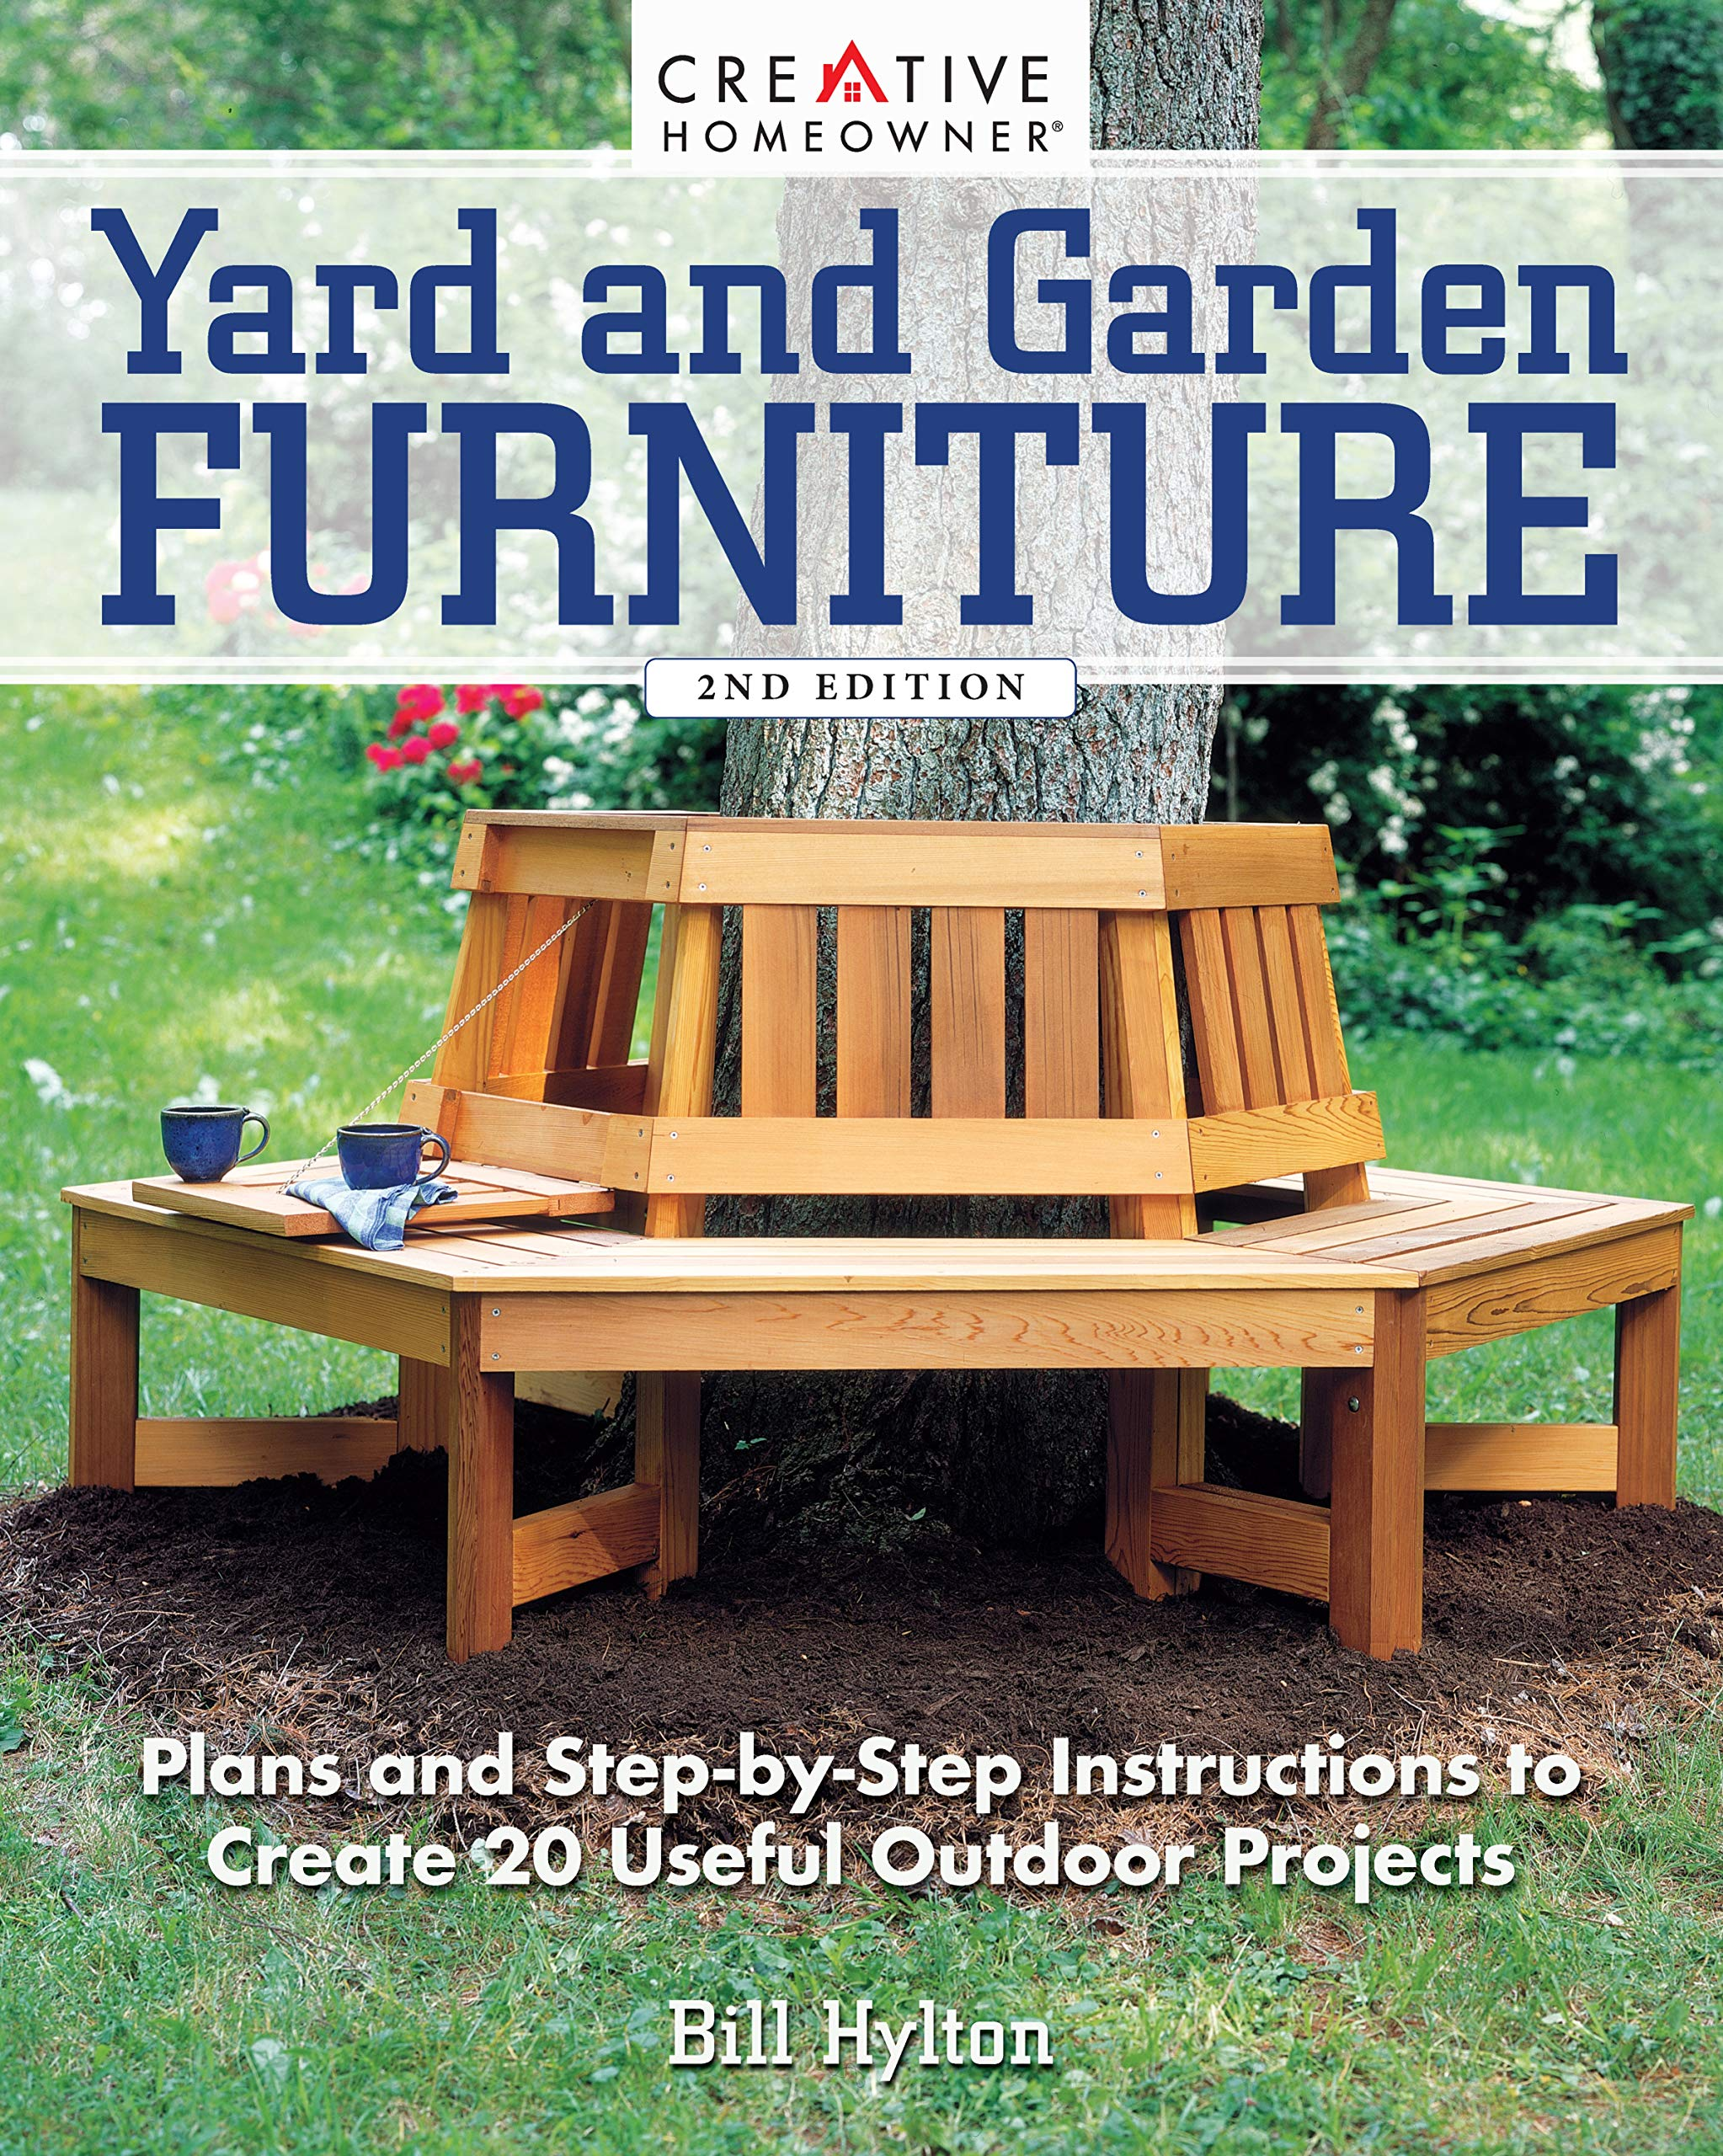 Yard and Garden Furniture, 8nd Edition: Plans and Step-by-Step